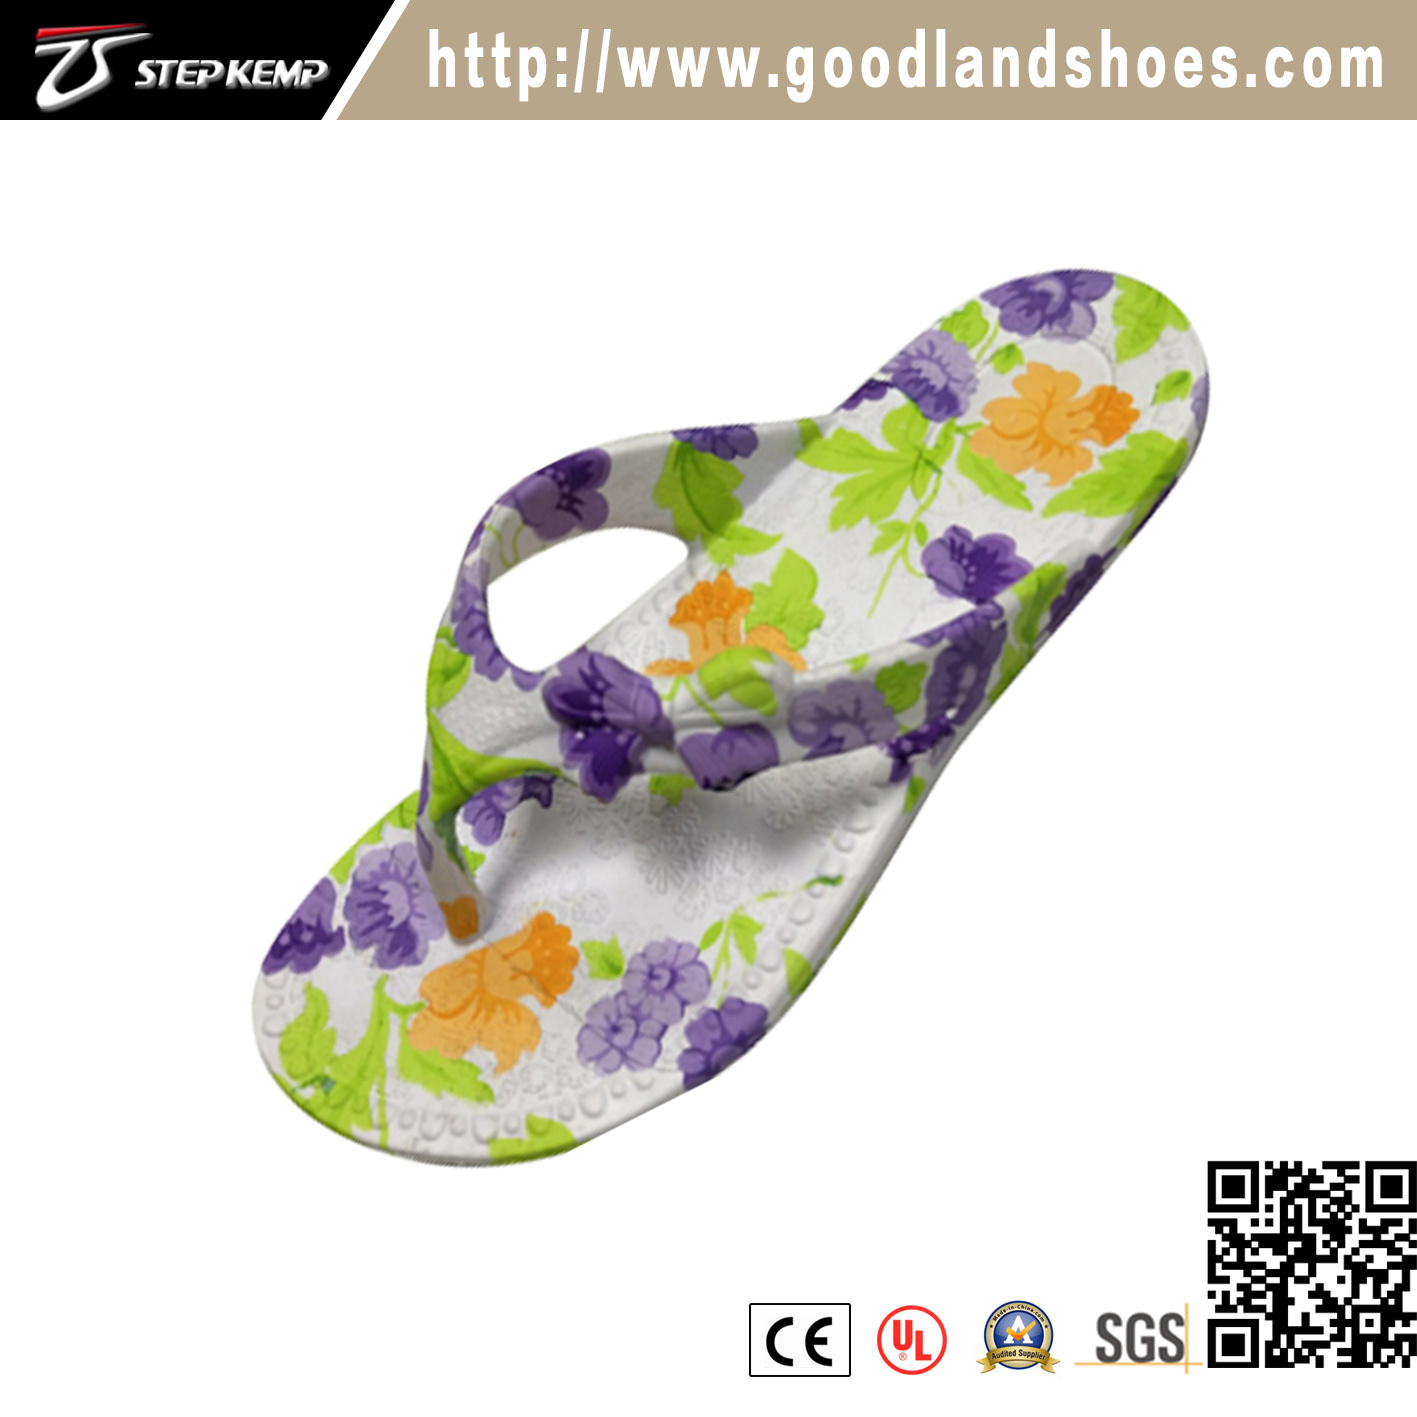 79f660f55 China Casual Comfortable Rubber Women Flower Slippers Flip Flop 20248 -  China Slipper Shoes